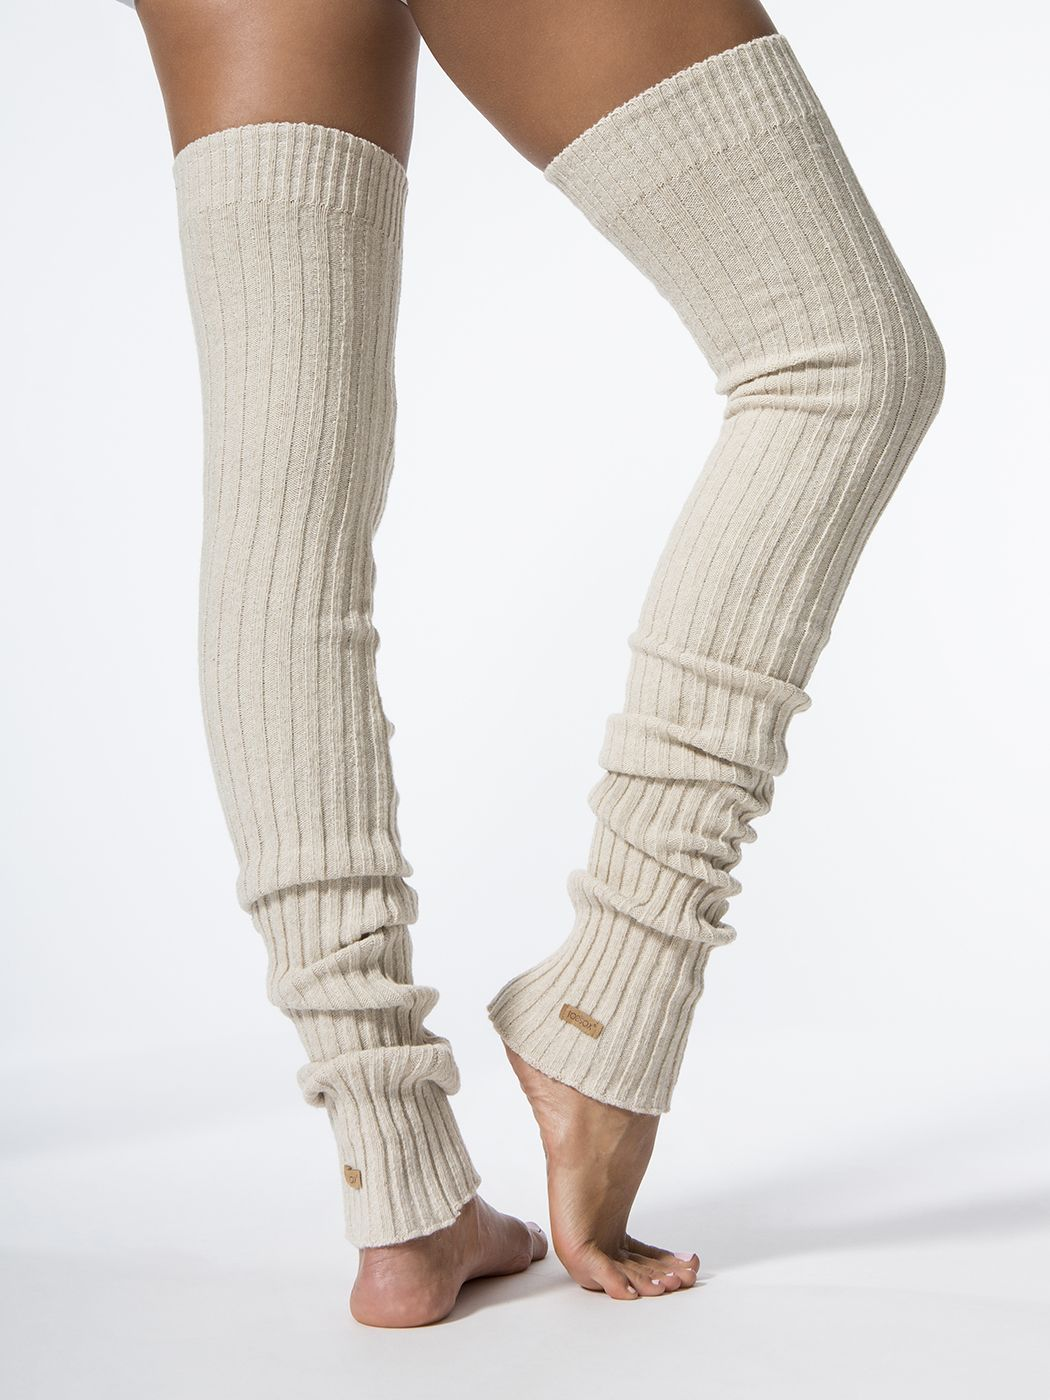 7b0c01743 TOESOX Leg Warmers-Thigh High Ivory LEG WARMERS + SOCKS